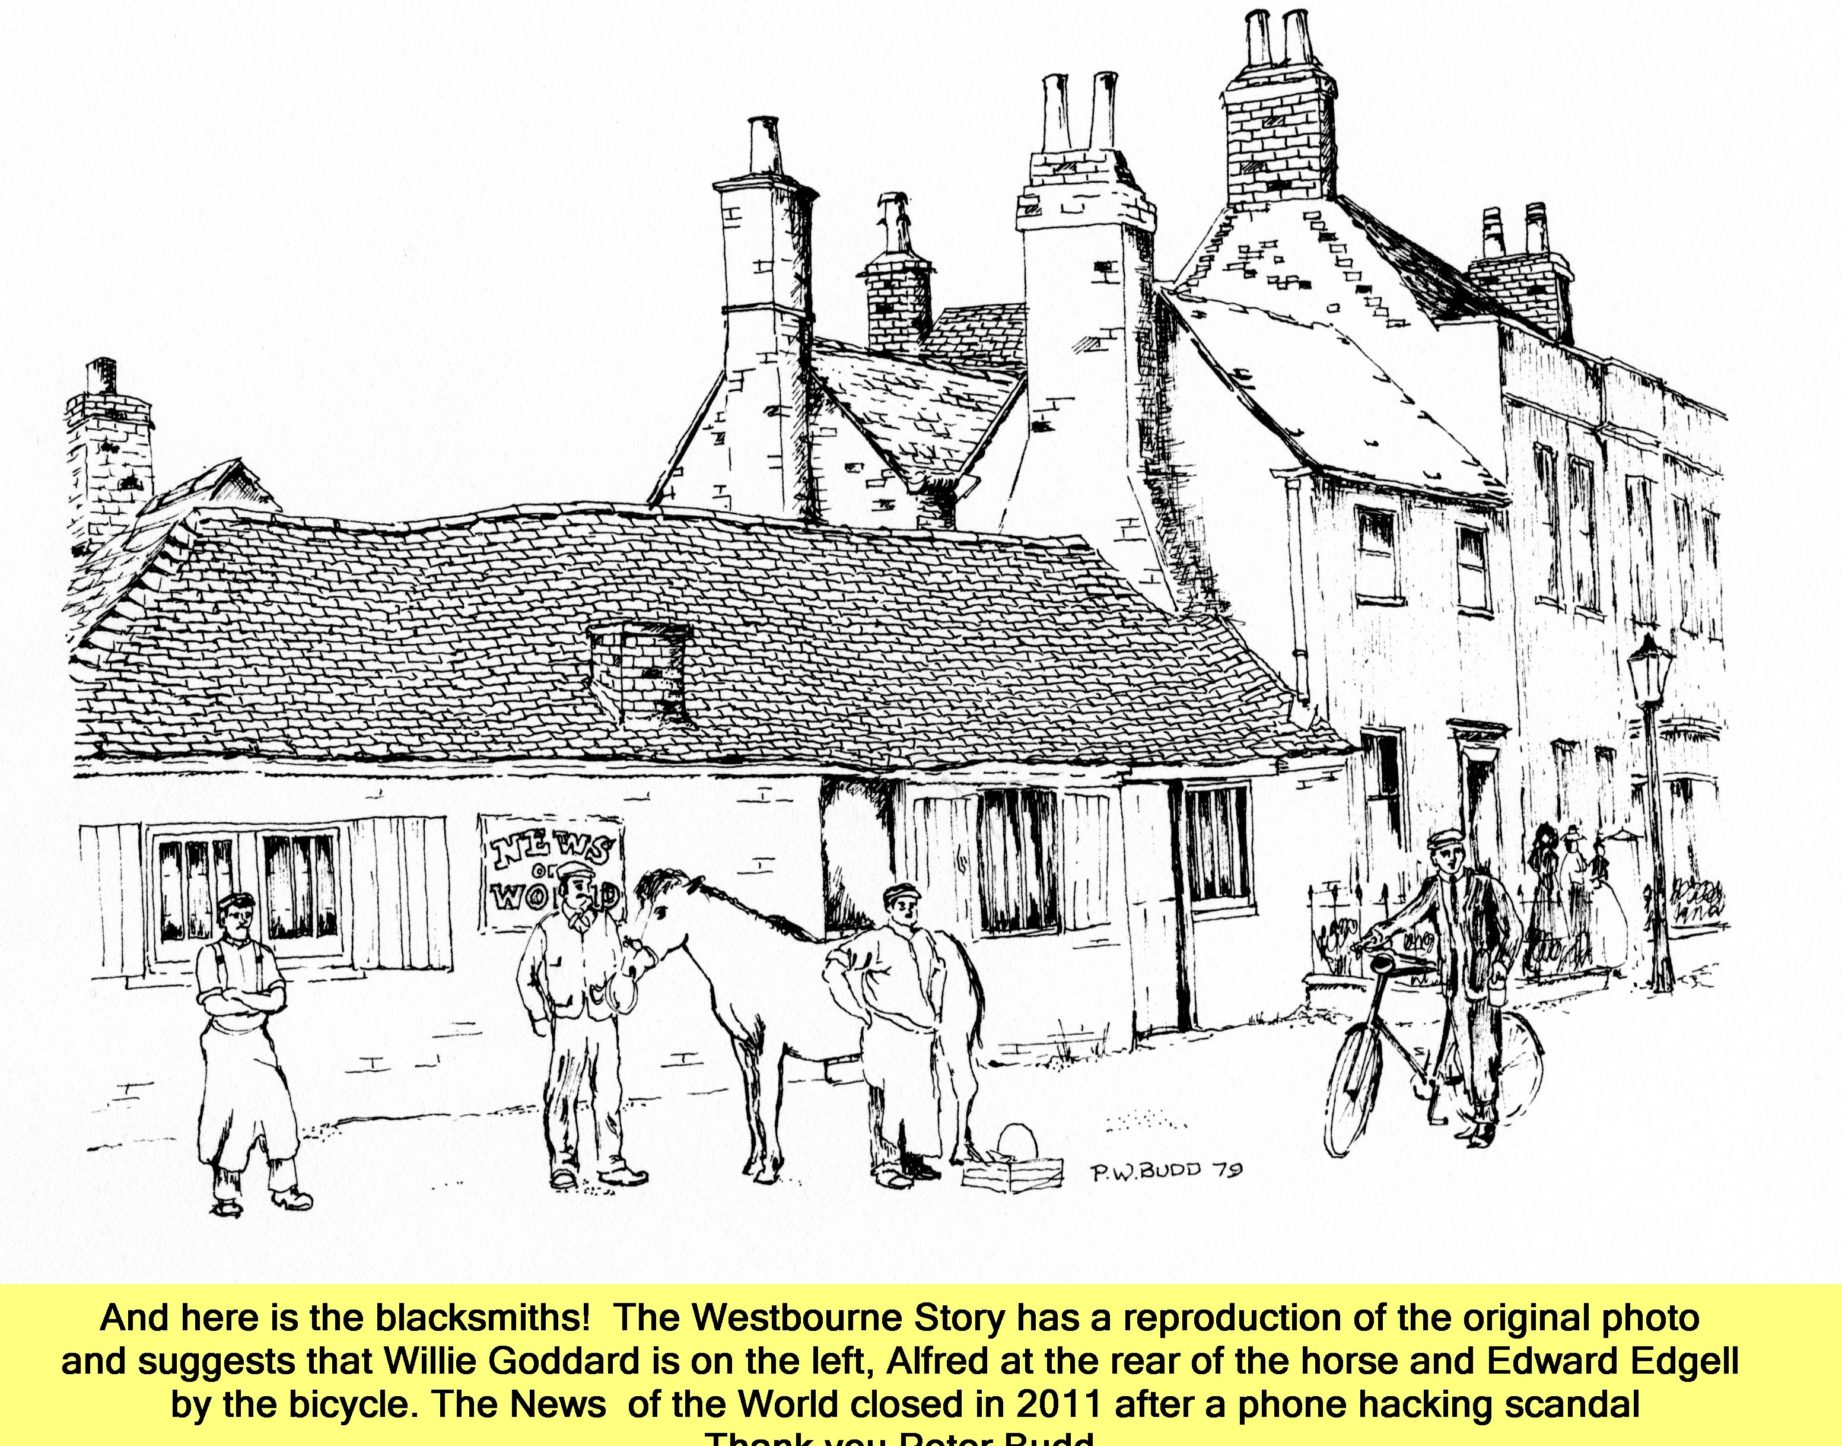 WESTBOURNE HISTORY PHOTO, GODDARD, BLACKSMITH , FOXBURY LANE